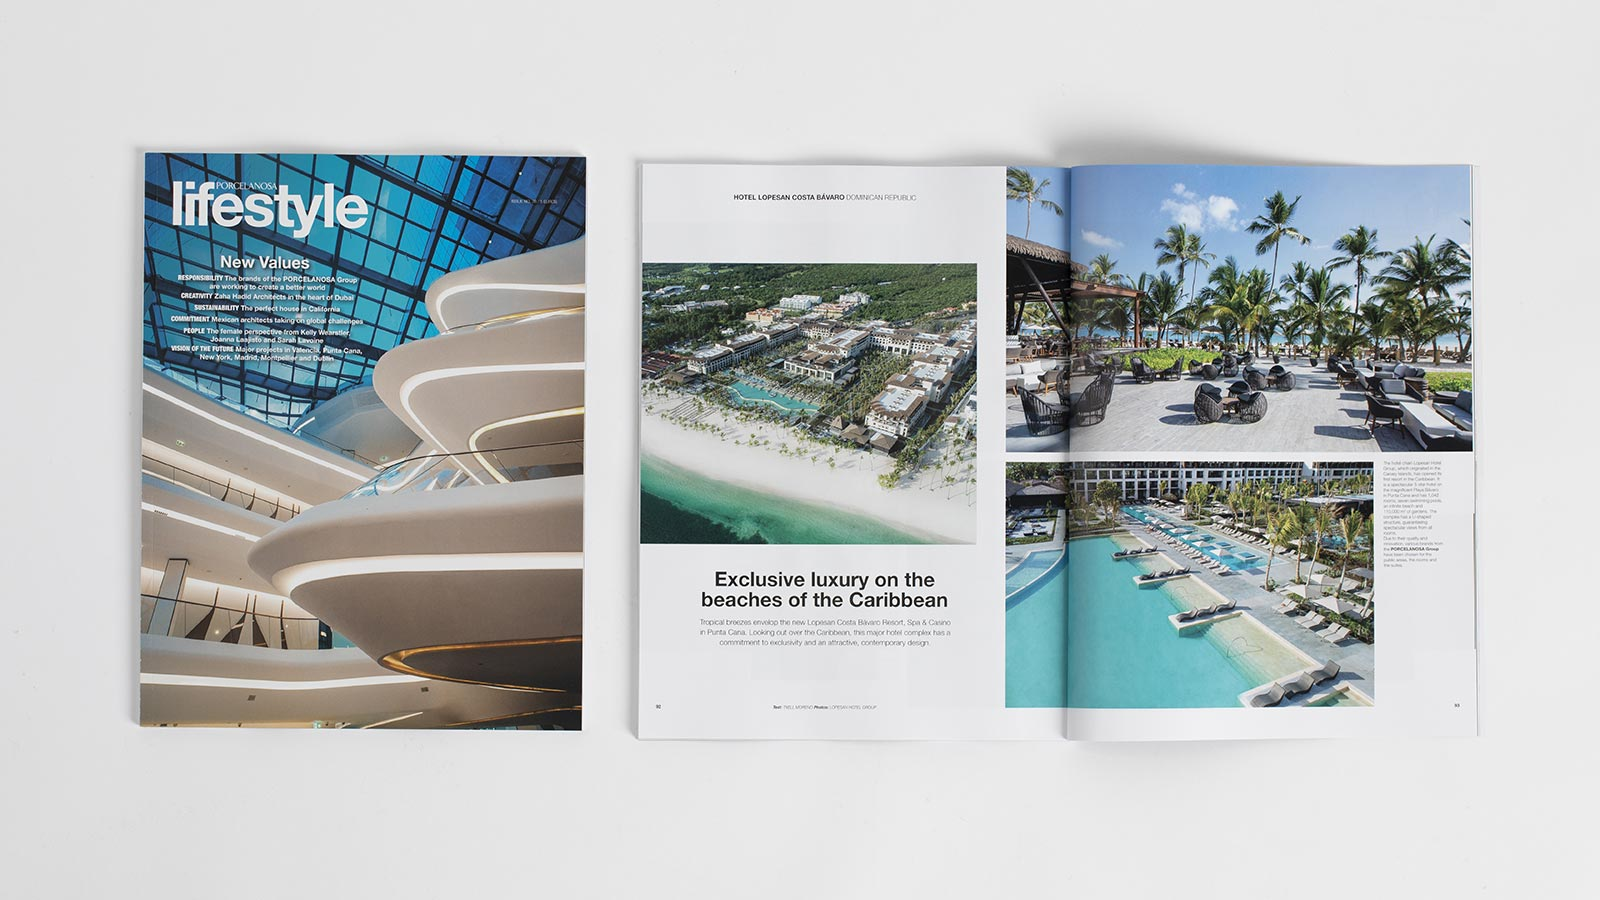 Mexican architecture and sustainability take centre stage in the 36th issue of Lifestyle Magazine